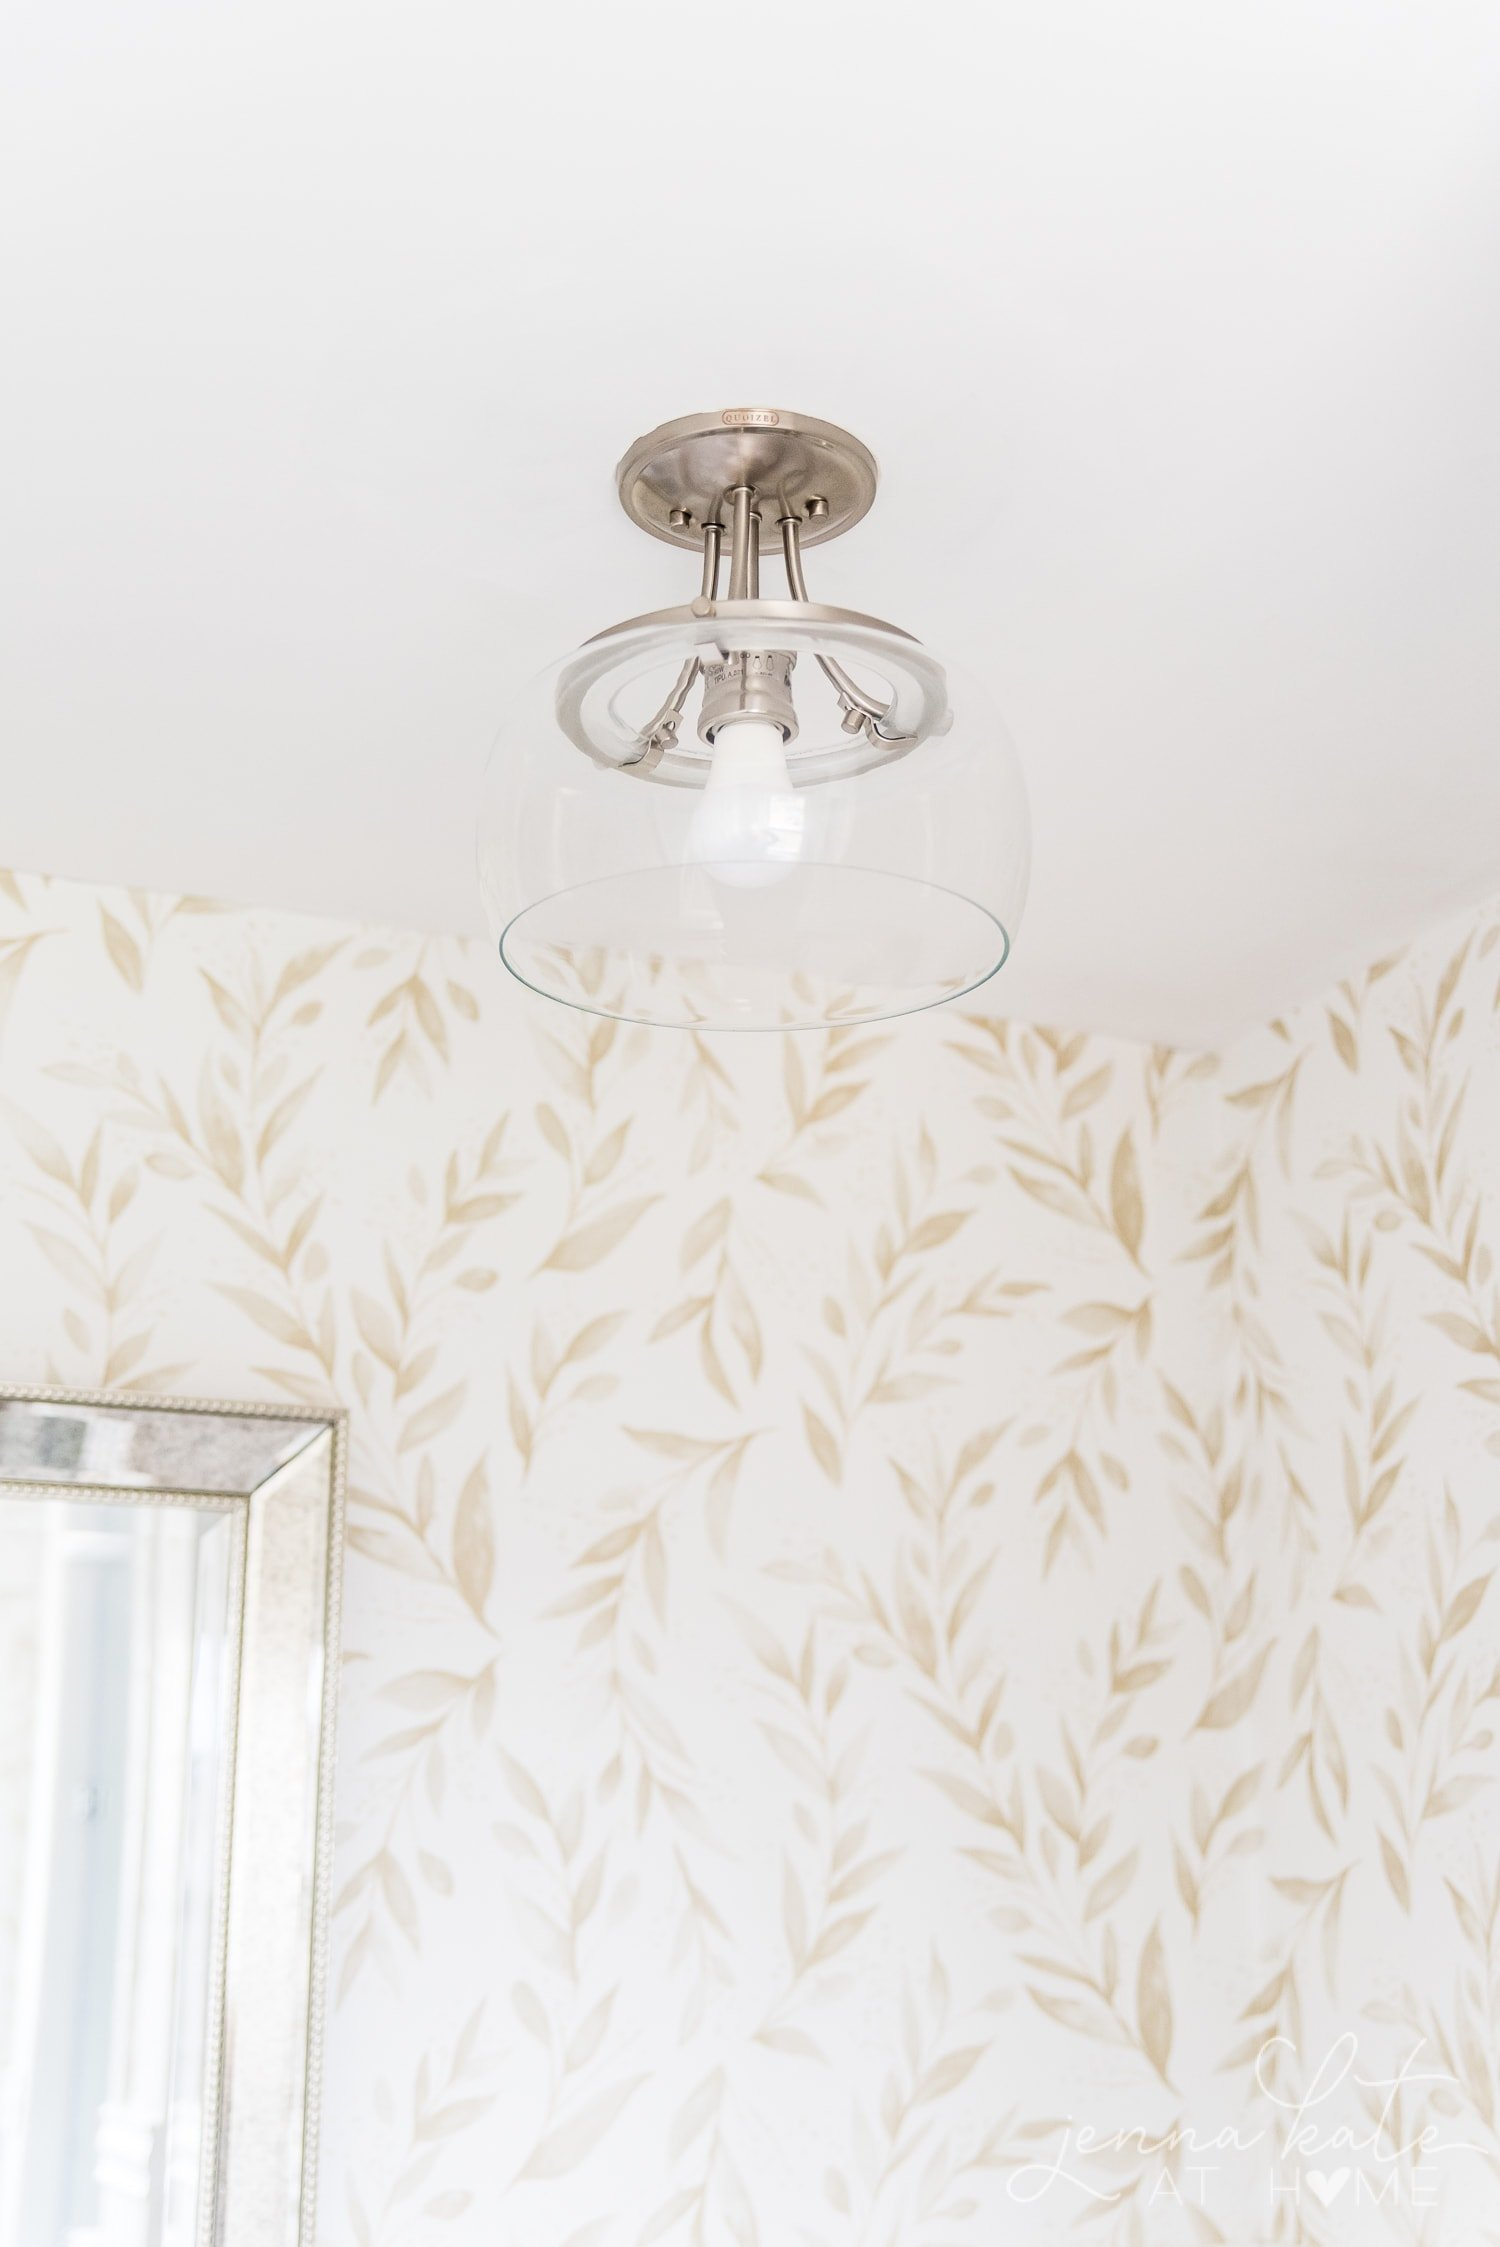 Clear glass light fixture against backdrop of new wallpaper